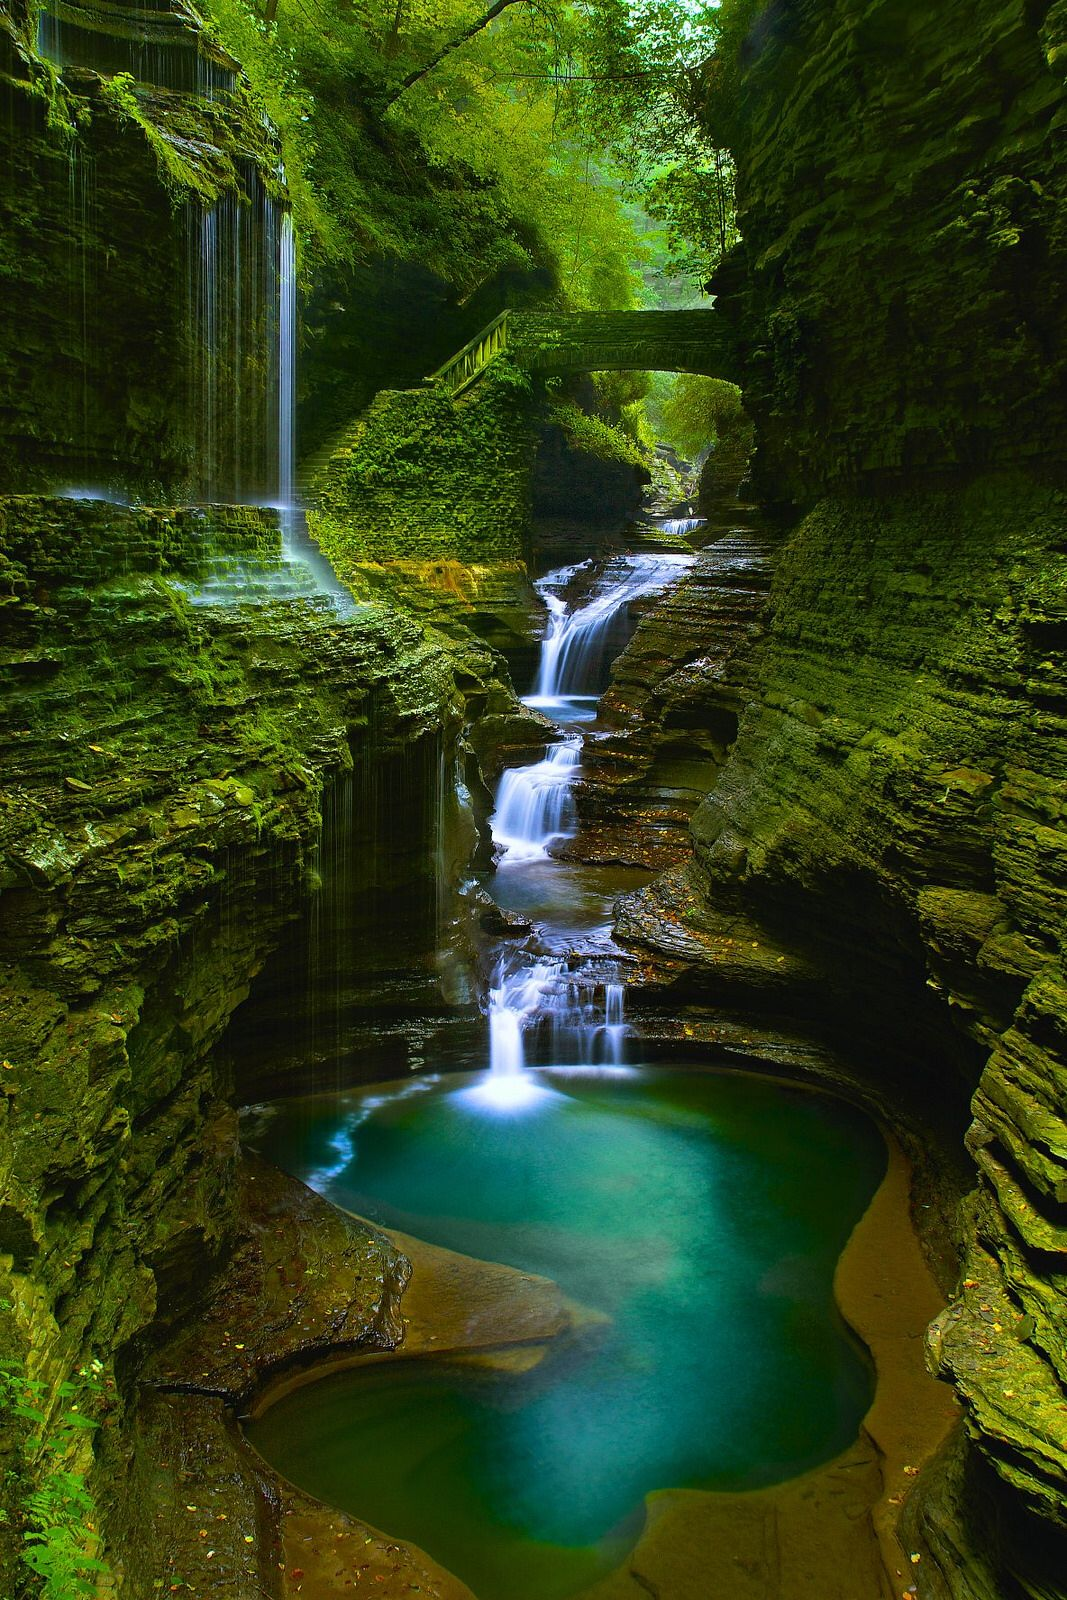 Rainbow Falls_Watkins Glen State Park, New York This place is usually filled with people. The best time to take photos without anybody in the pictures is at 7 am before sunrising. Plus, you don't need to pay the $8 entrance fee. waterfalls_pool_stone_bridge